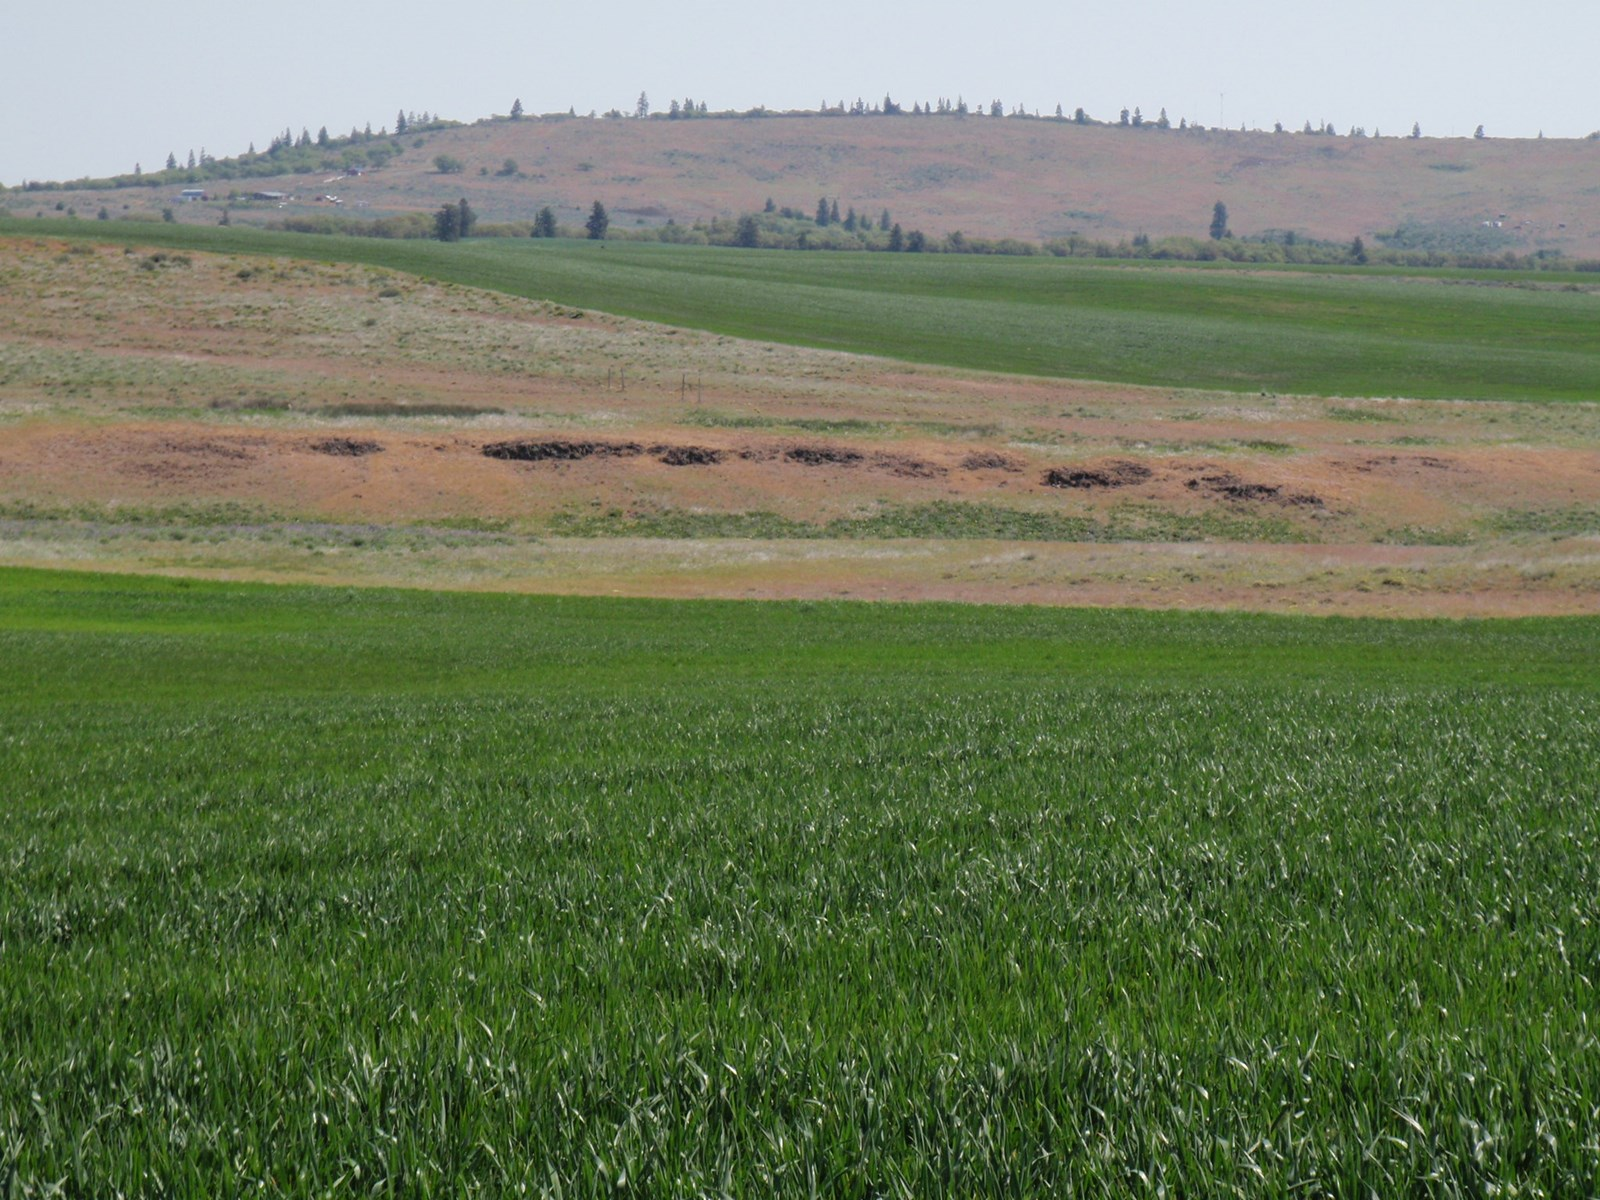 Land for sale in Goldendale Washington, near Dalles Orgeon